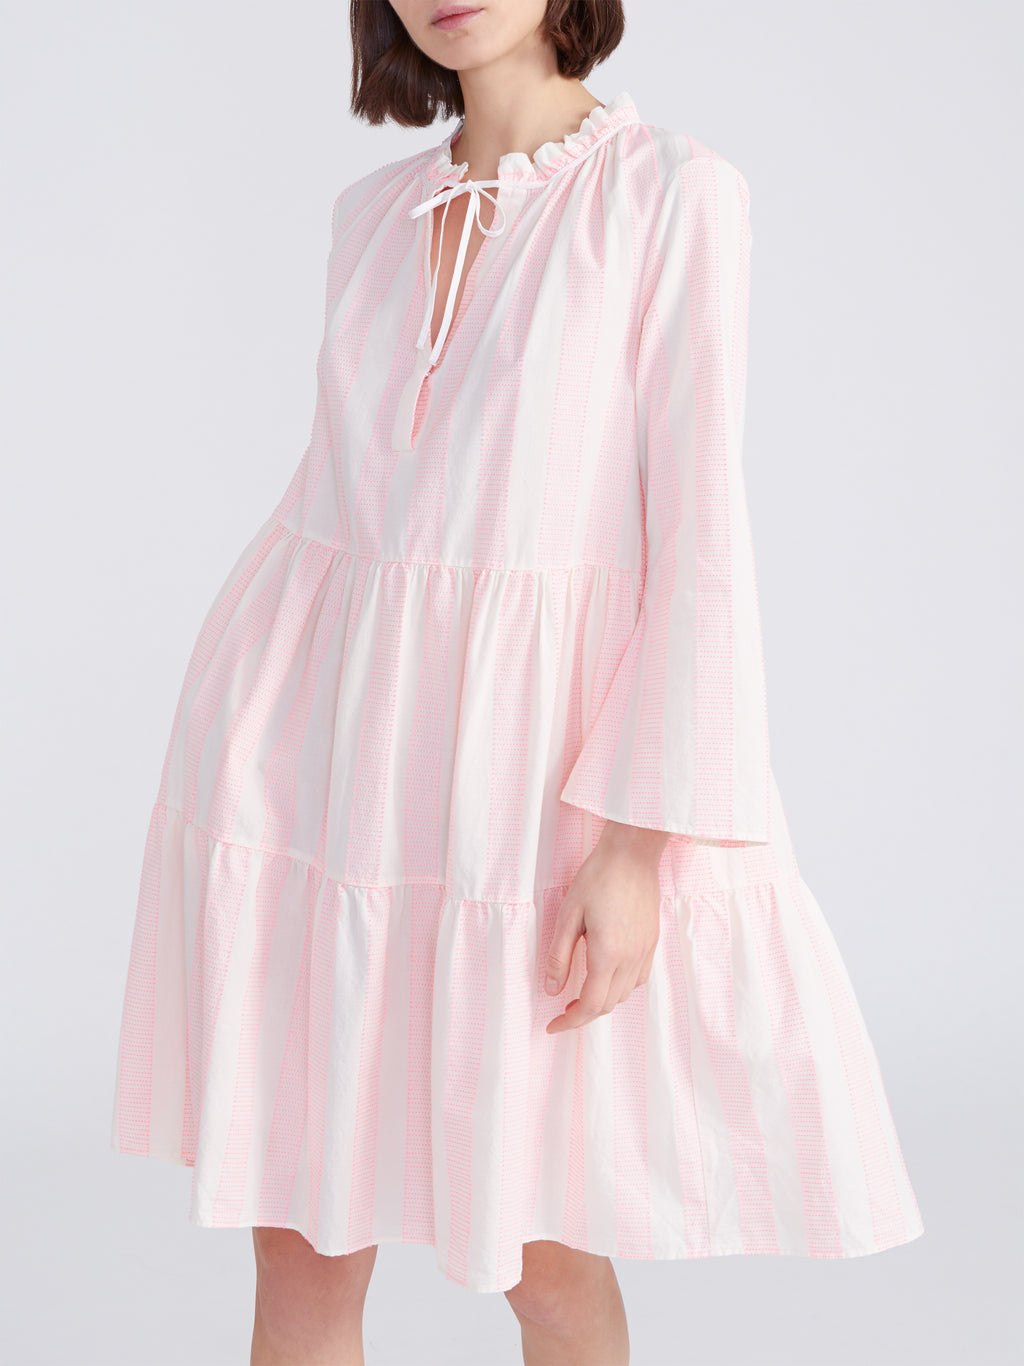 0039 Italy MILLY 3/4 Sleeve Tiered Dress White & Pink